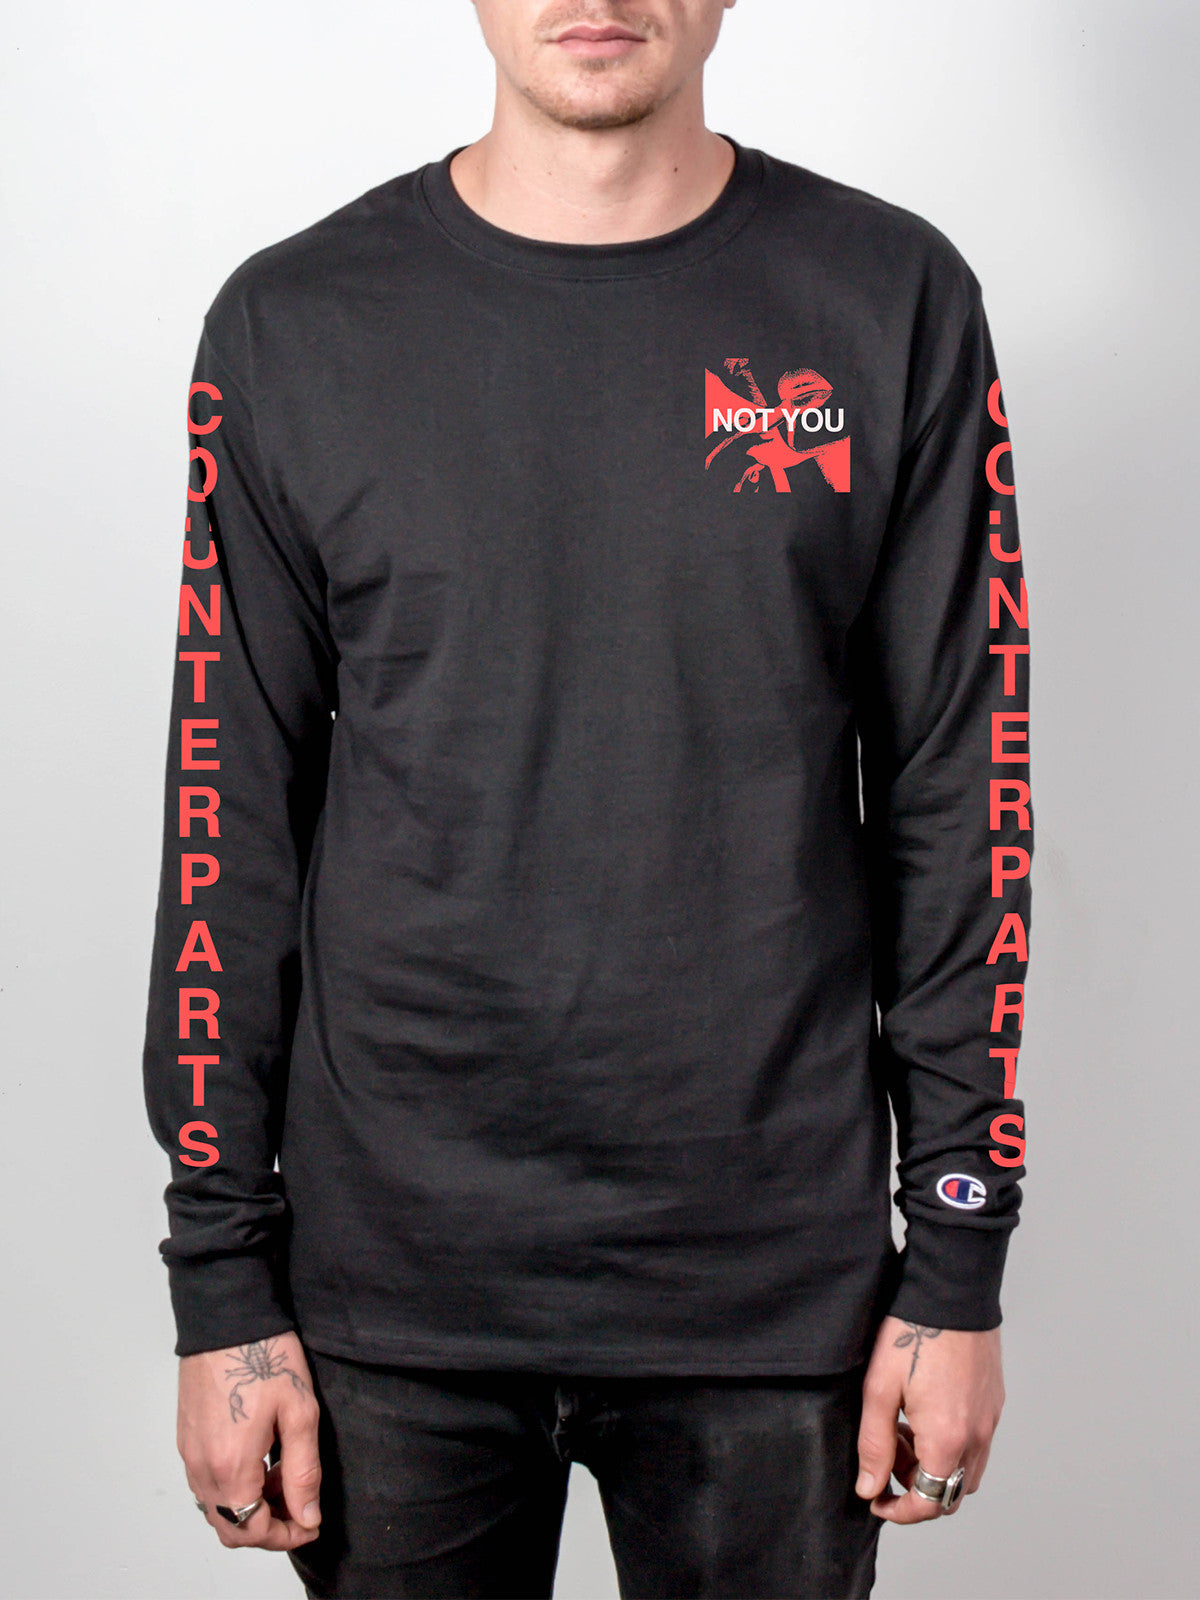 Counterparts - Champion Longsleeve & Digital Album Download - Merch Limited